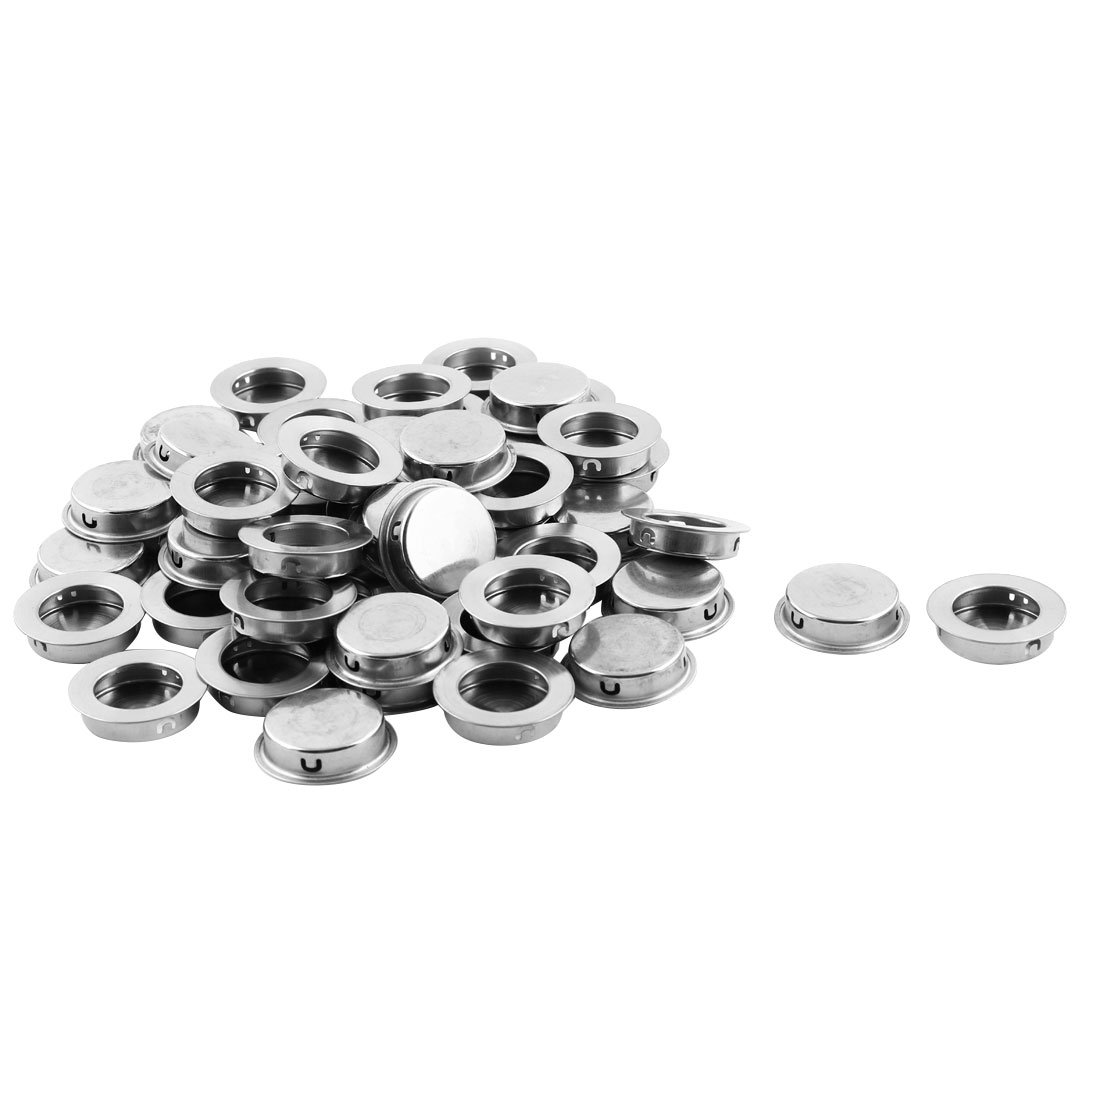 uxcell Drawer Closet Stainless Steel Embedded Round Flush Pull Handles 35mm Dia 50 PCS